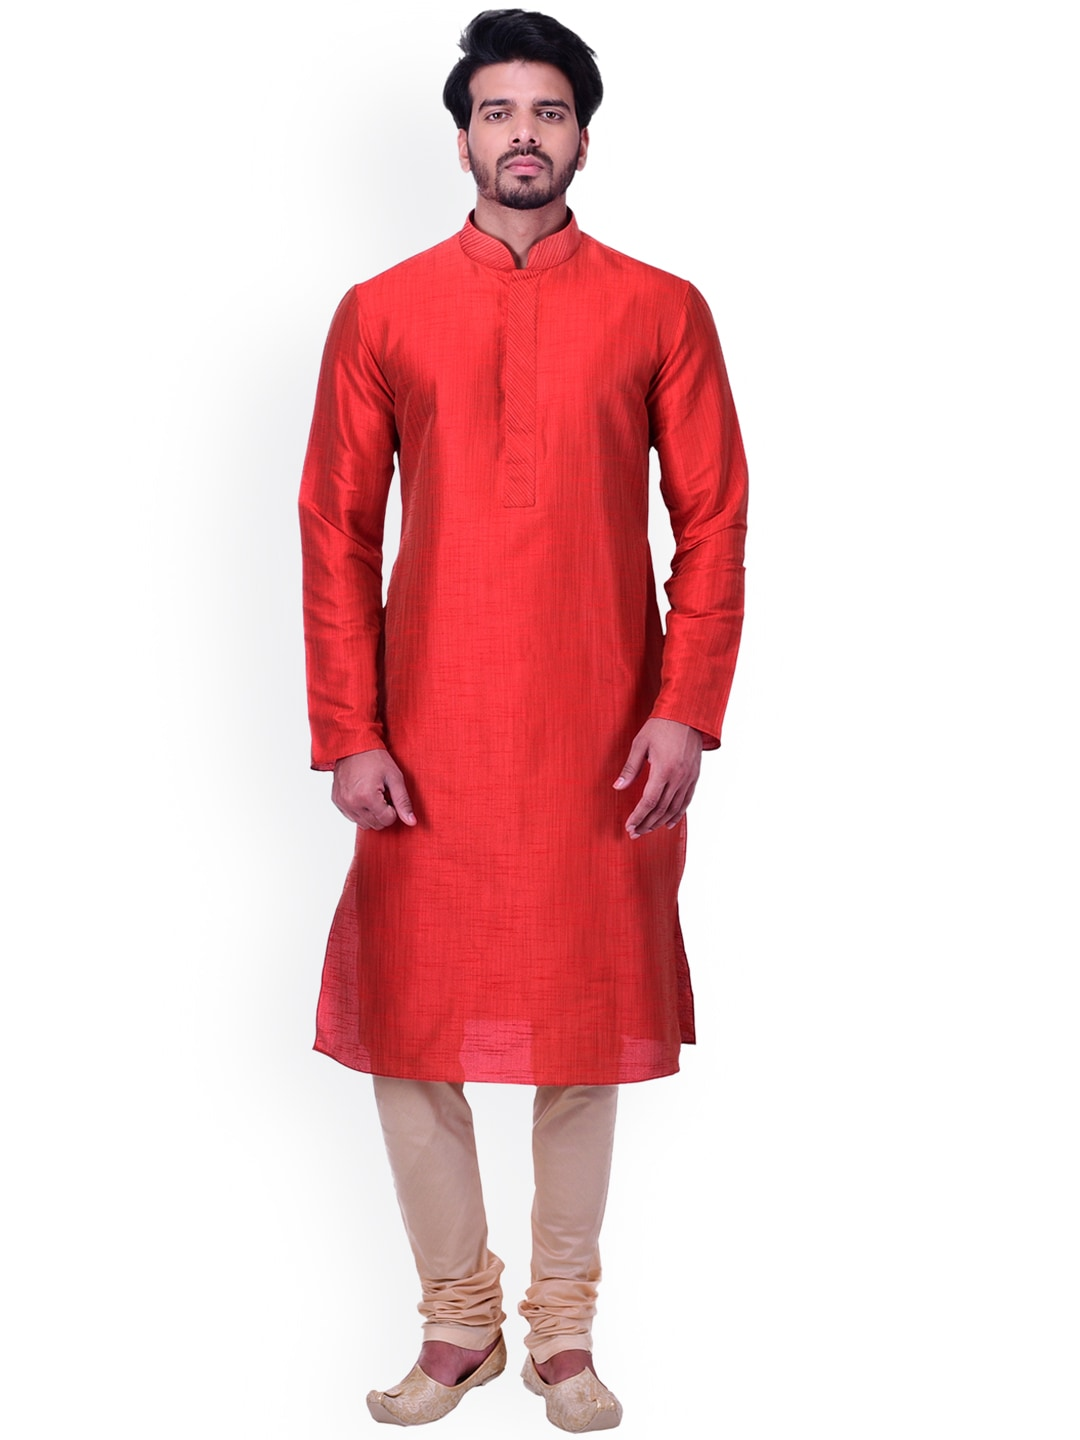 fa1a319893fb Ethnic Wear for Men - Buy Gent s Ethnic Wear Online in India